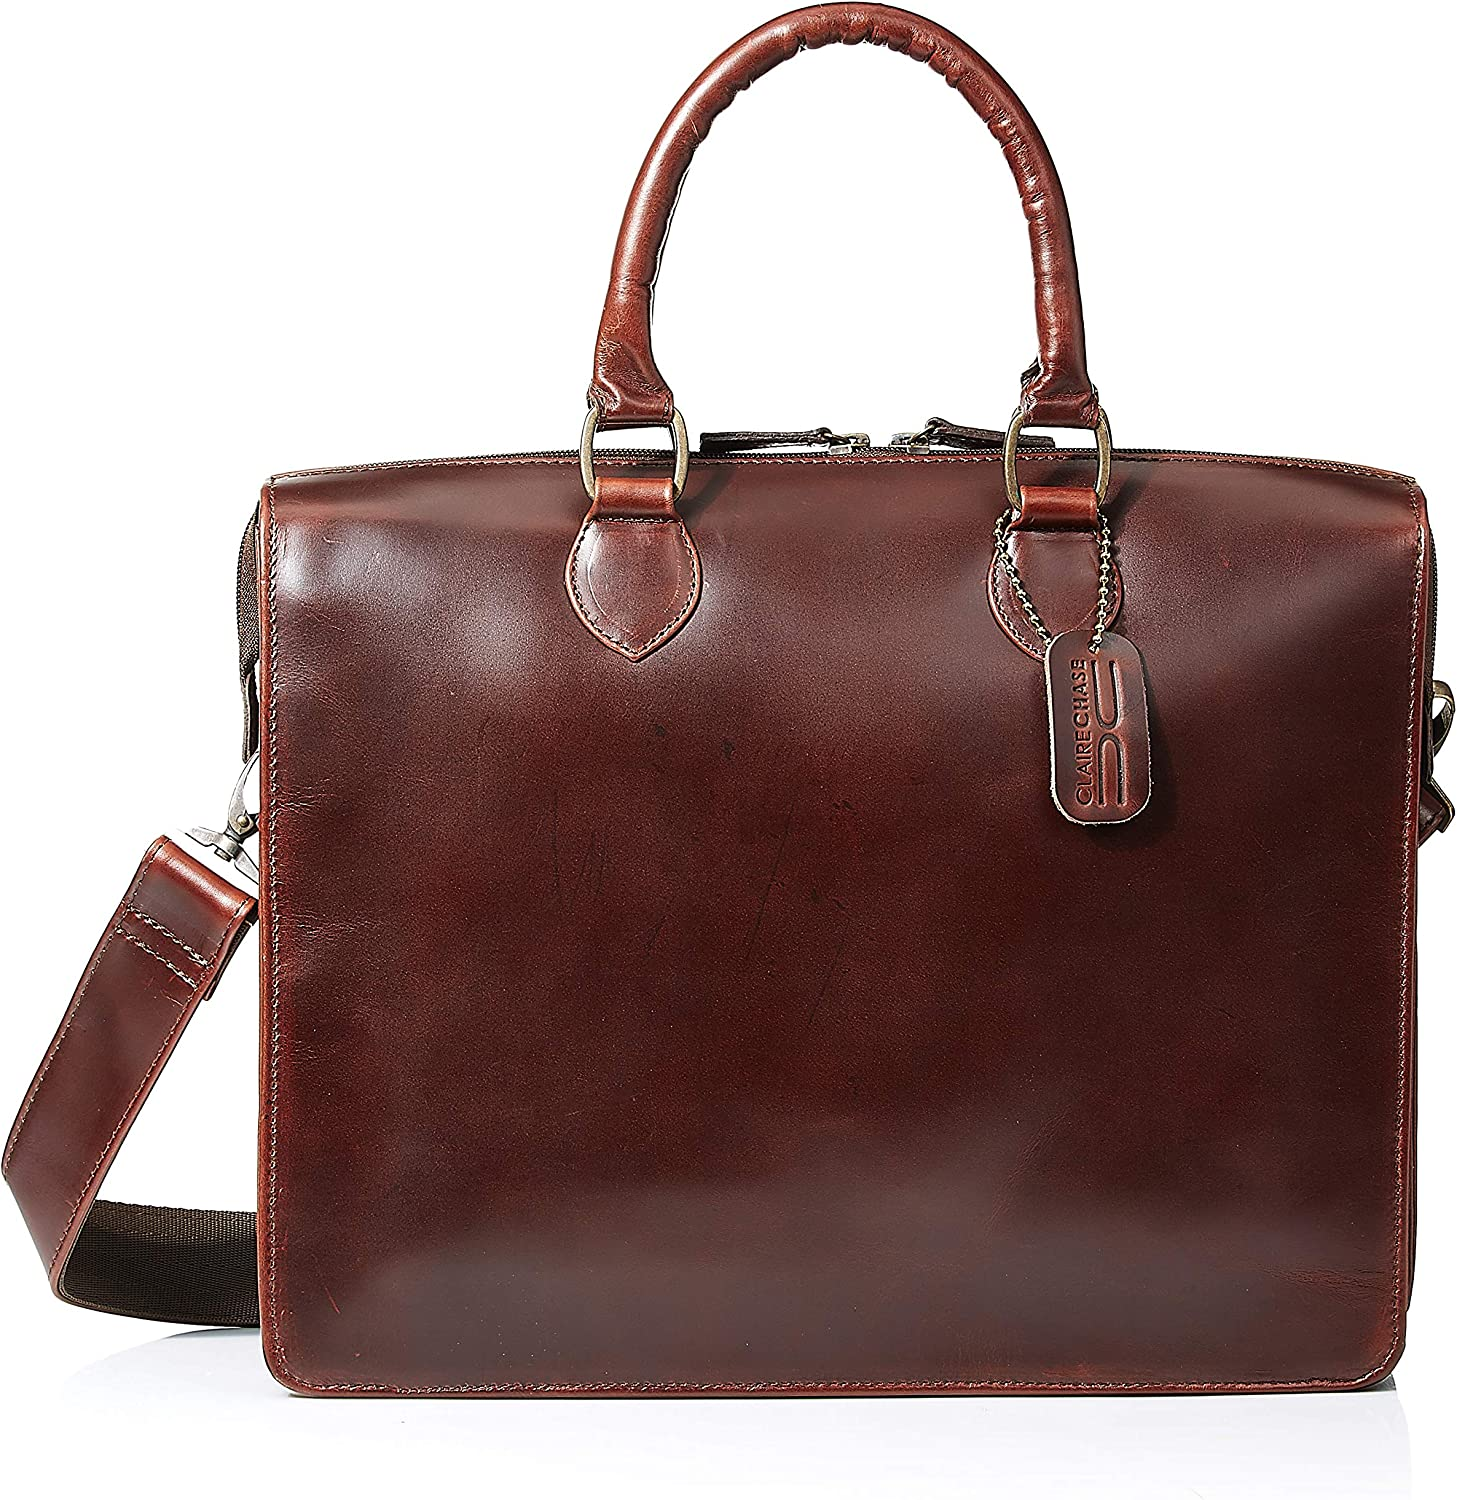 Claire Chase Leather Brussels Briefcase in Dark Brown